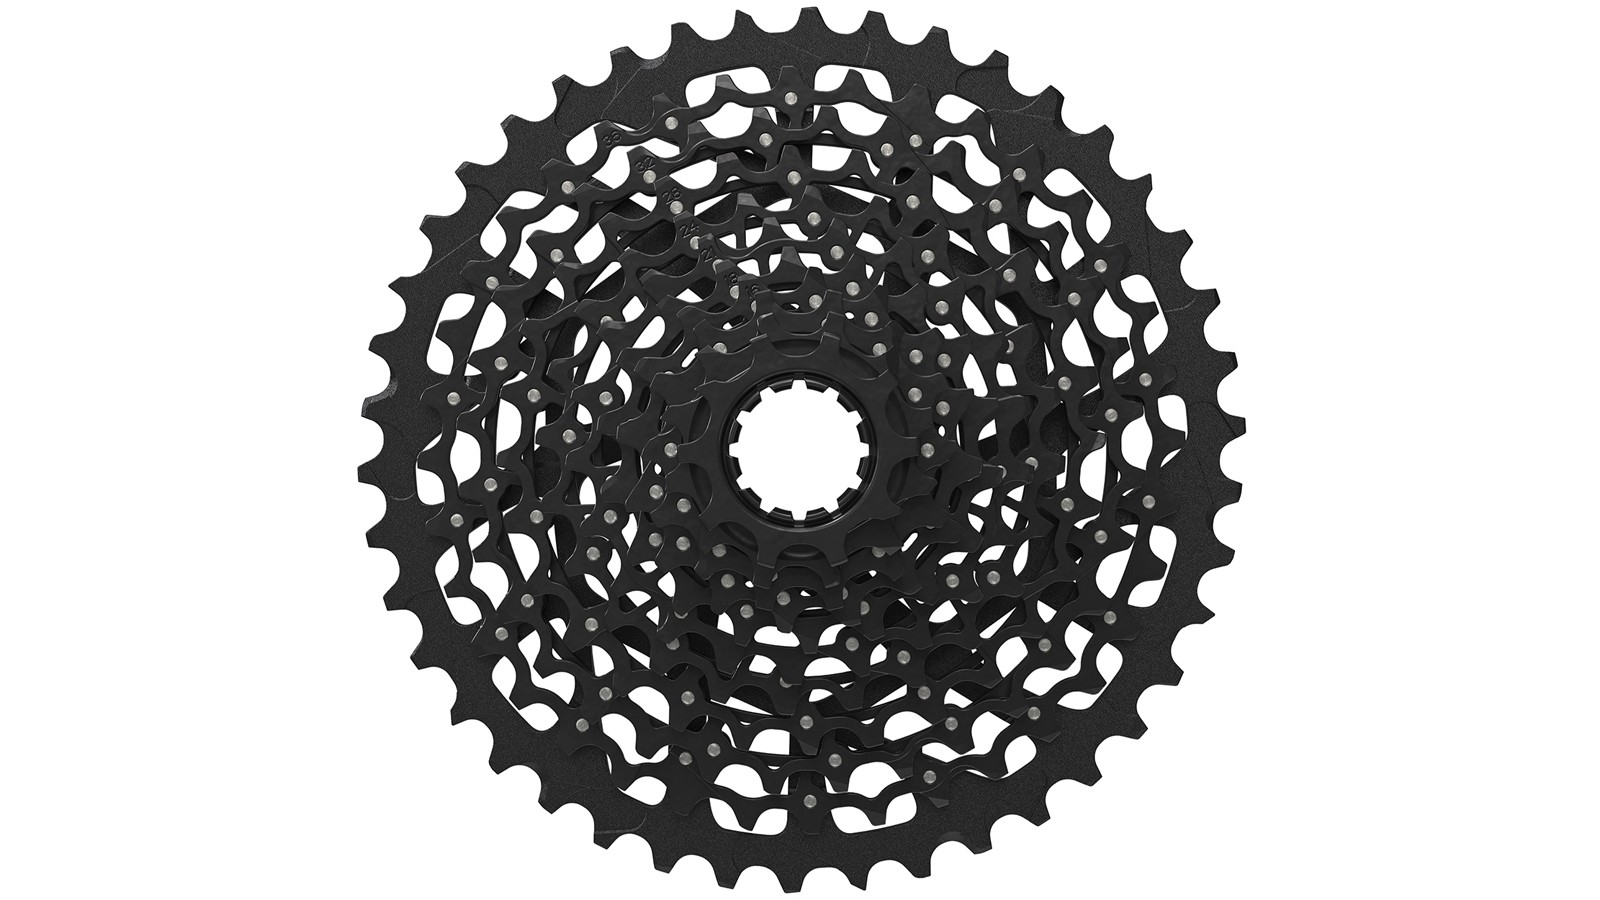 """The XG-1180 also called the """"Mini Cluster,"""" is constructed from eight pinned aluminum cogs mated to three CNC-machined steel cogs"""